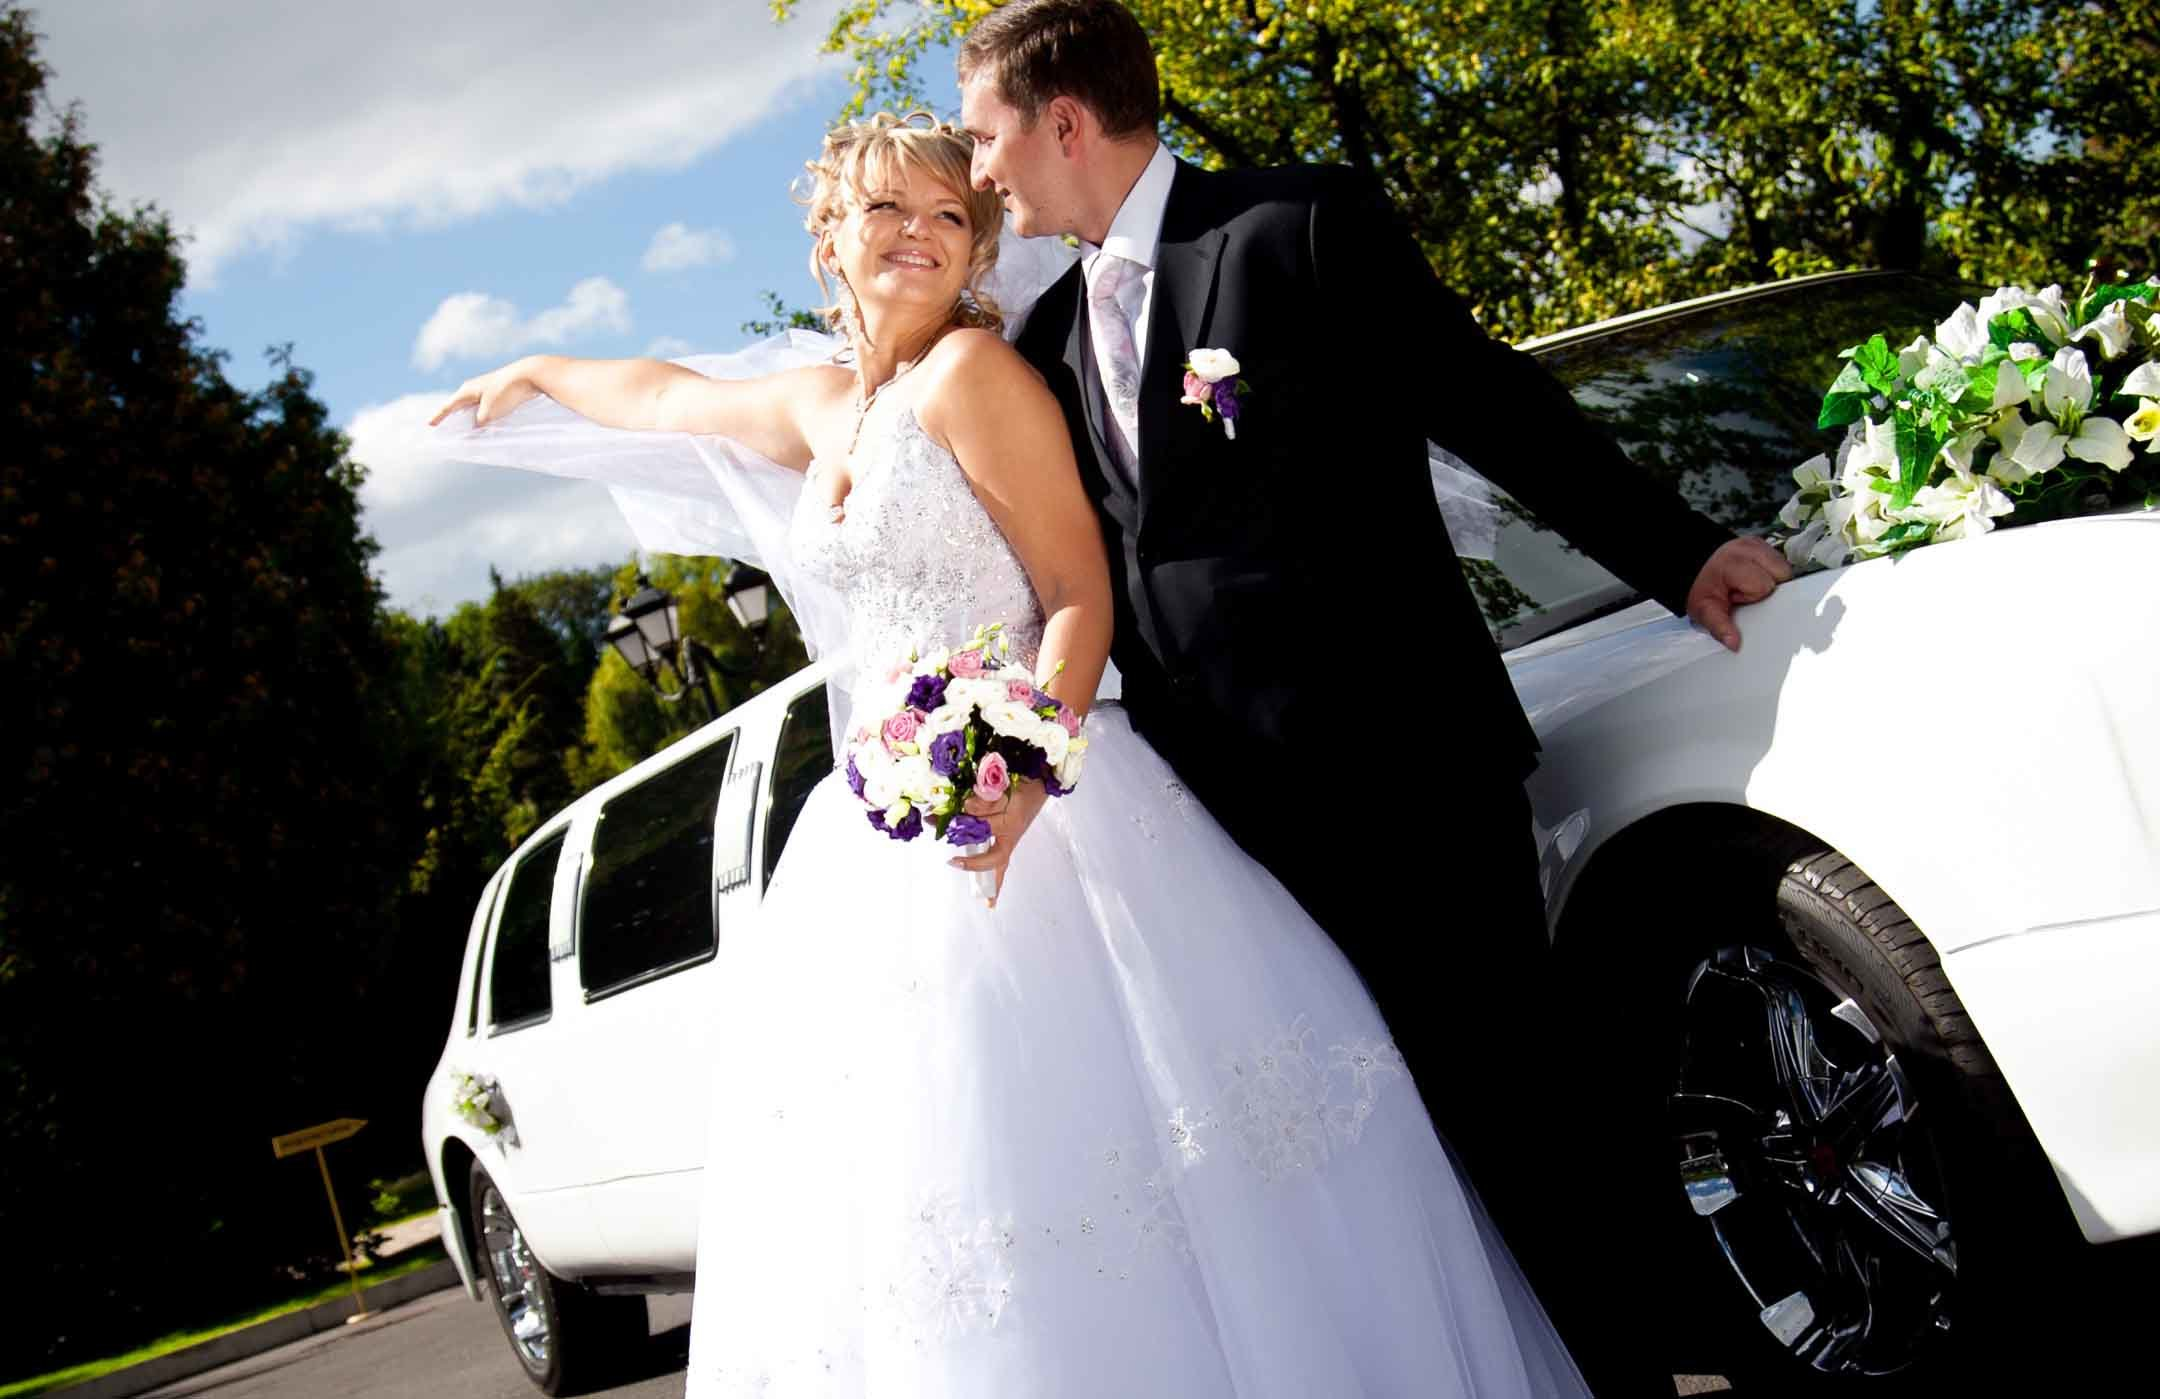 wedding limo dallas Wedding Limo Event Rental Service DFW Dallas Fort Worth